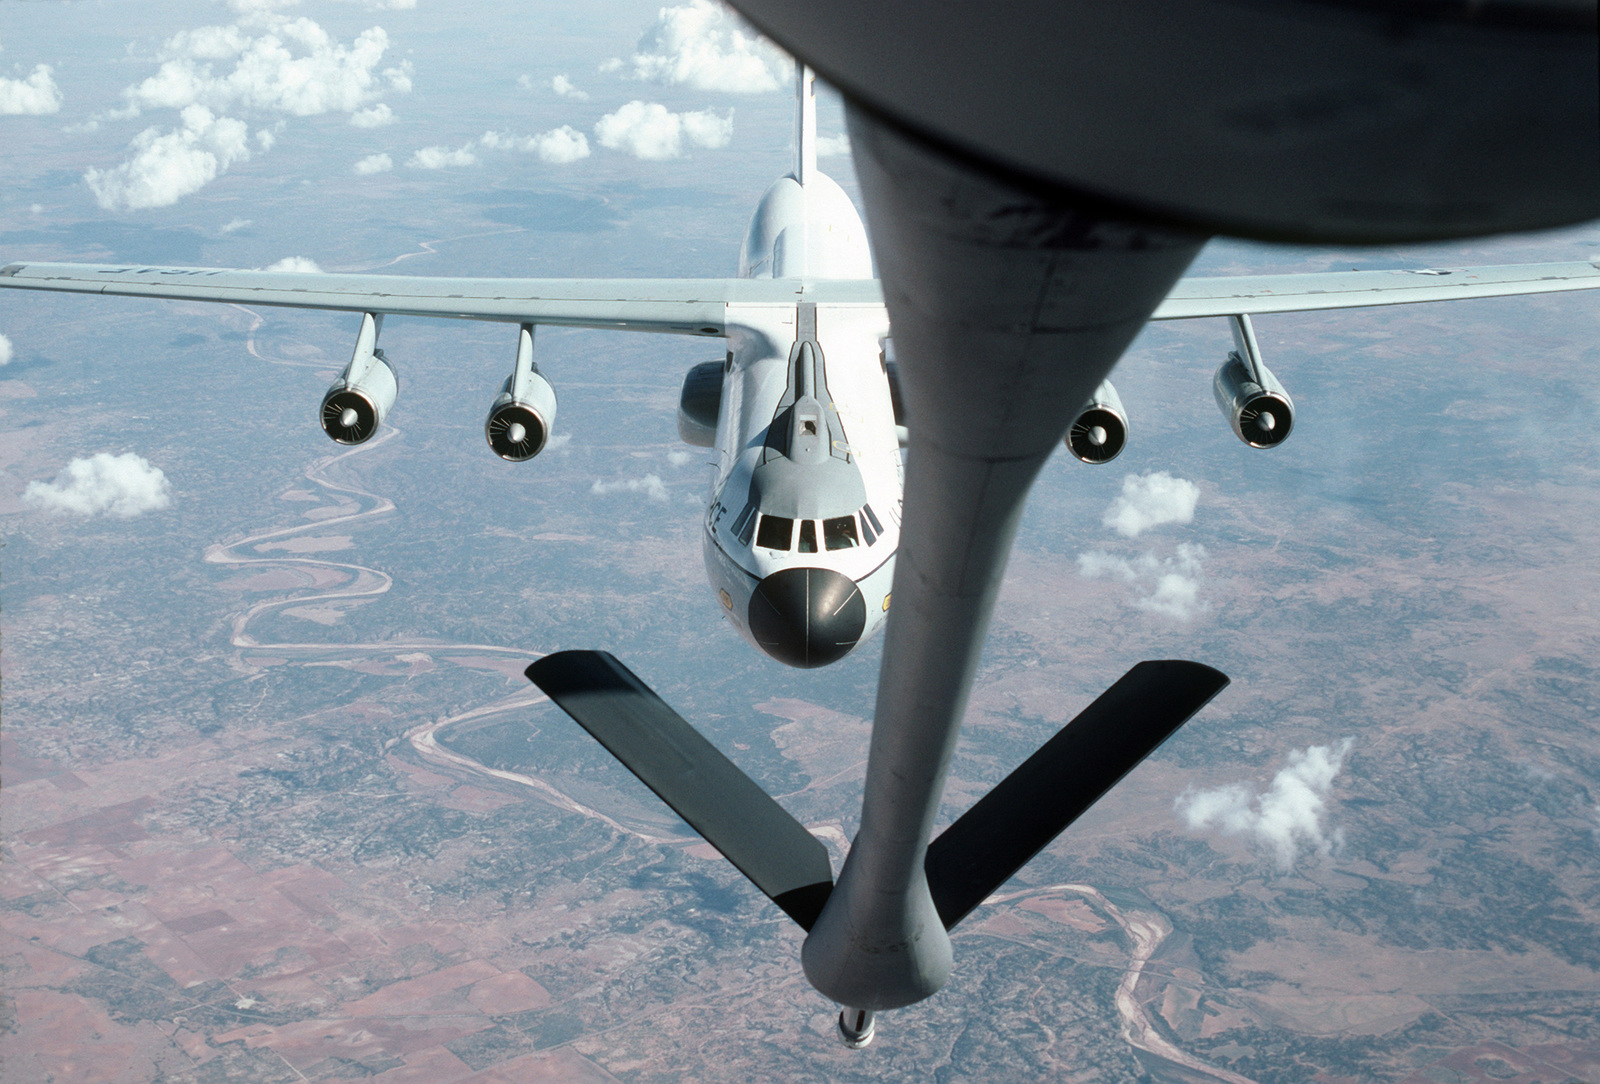 A view from the refueling boom control station aboard a 452nd Air Refueling Wing KC-135 Stratotanker as a C-141B Starlifter aircraft approaches to be refueled in flight over Altus Air Force Base. Both aircraft are manned by Air Force Reserve crews